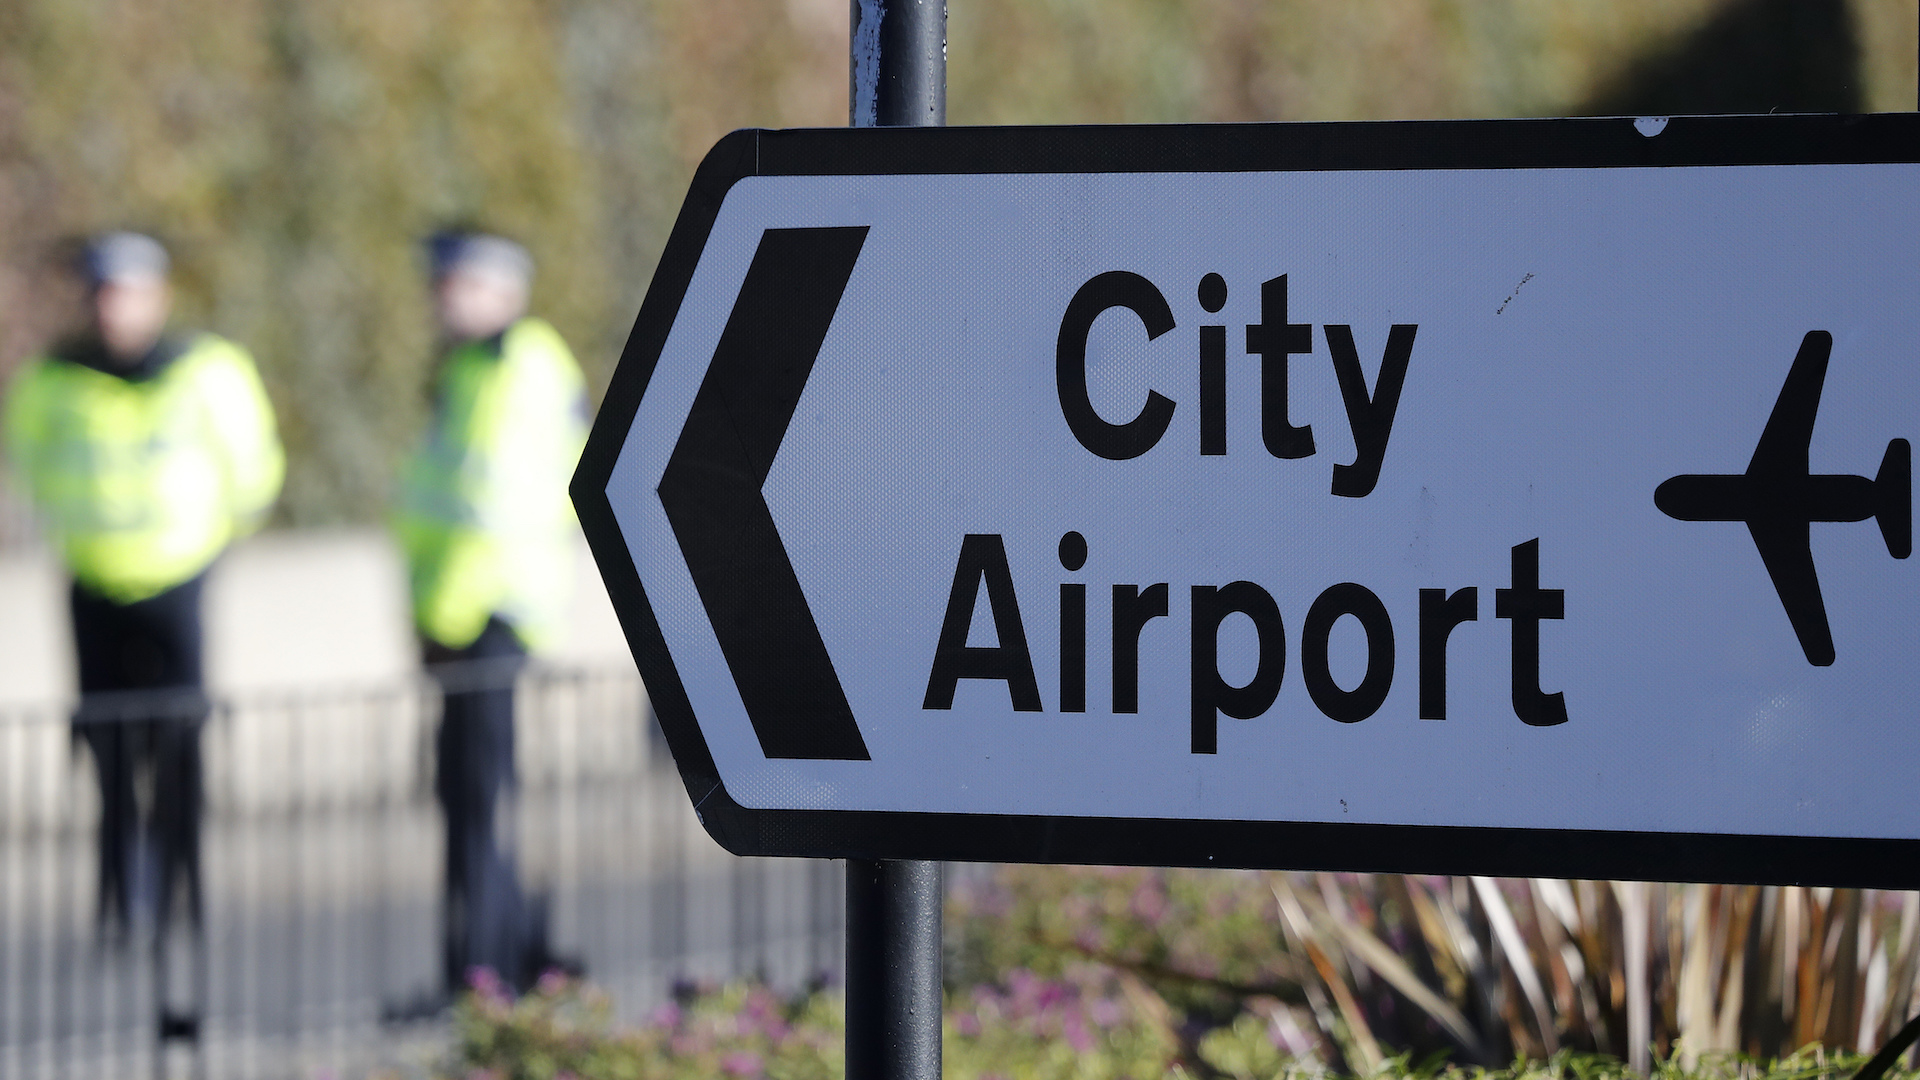 London City Airport cancels all flights after discovery of huge WWII bomb